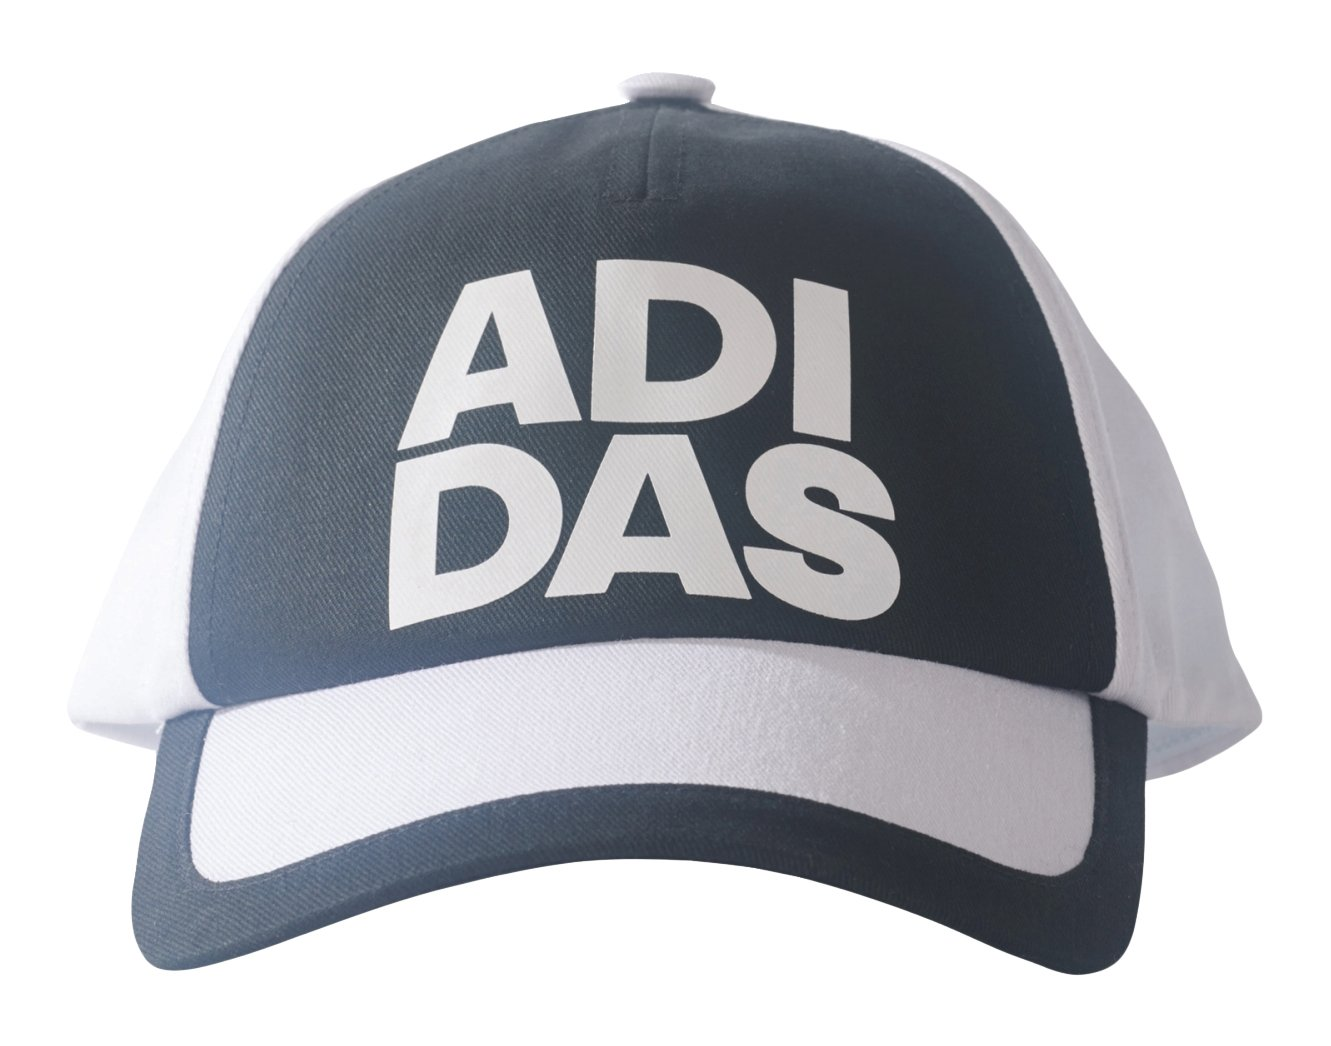 adidas Lk Gra Cap Tennis Cap for Boys